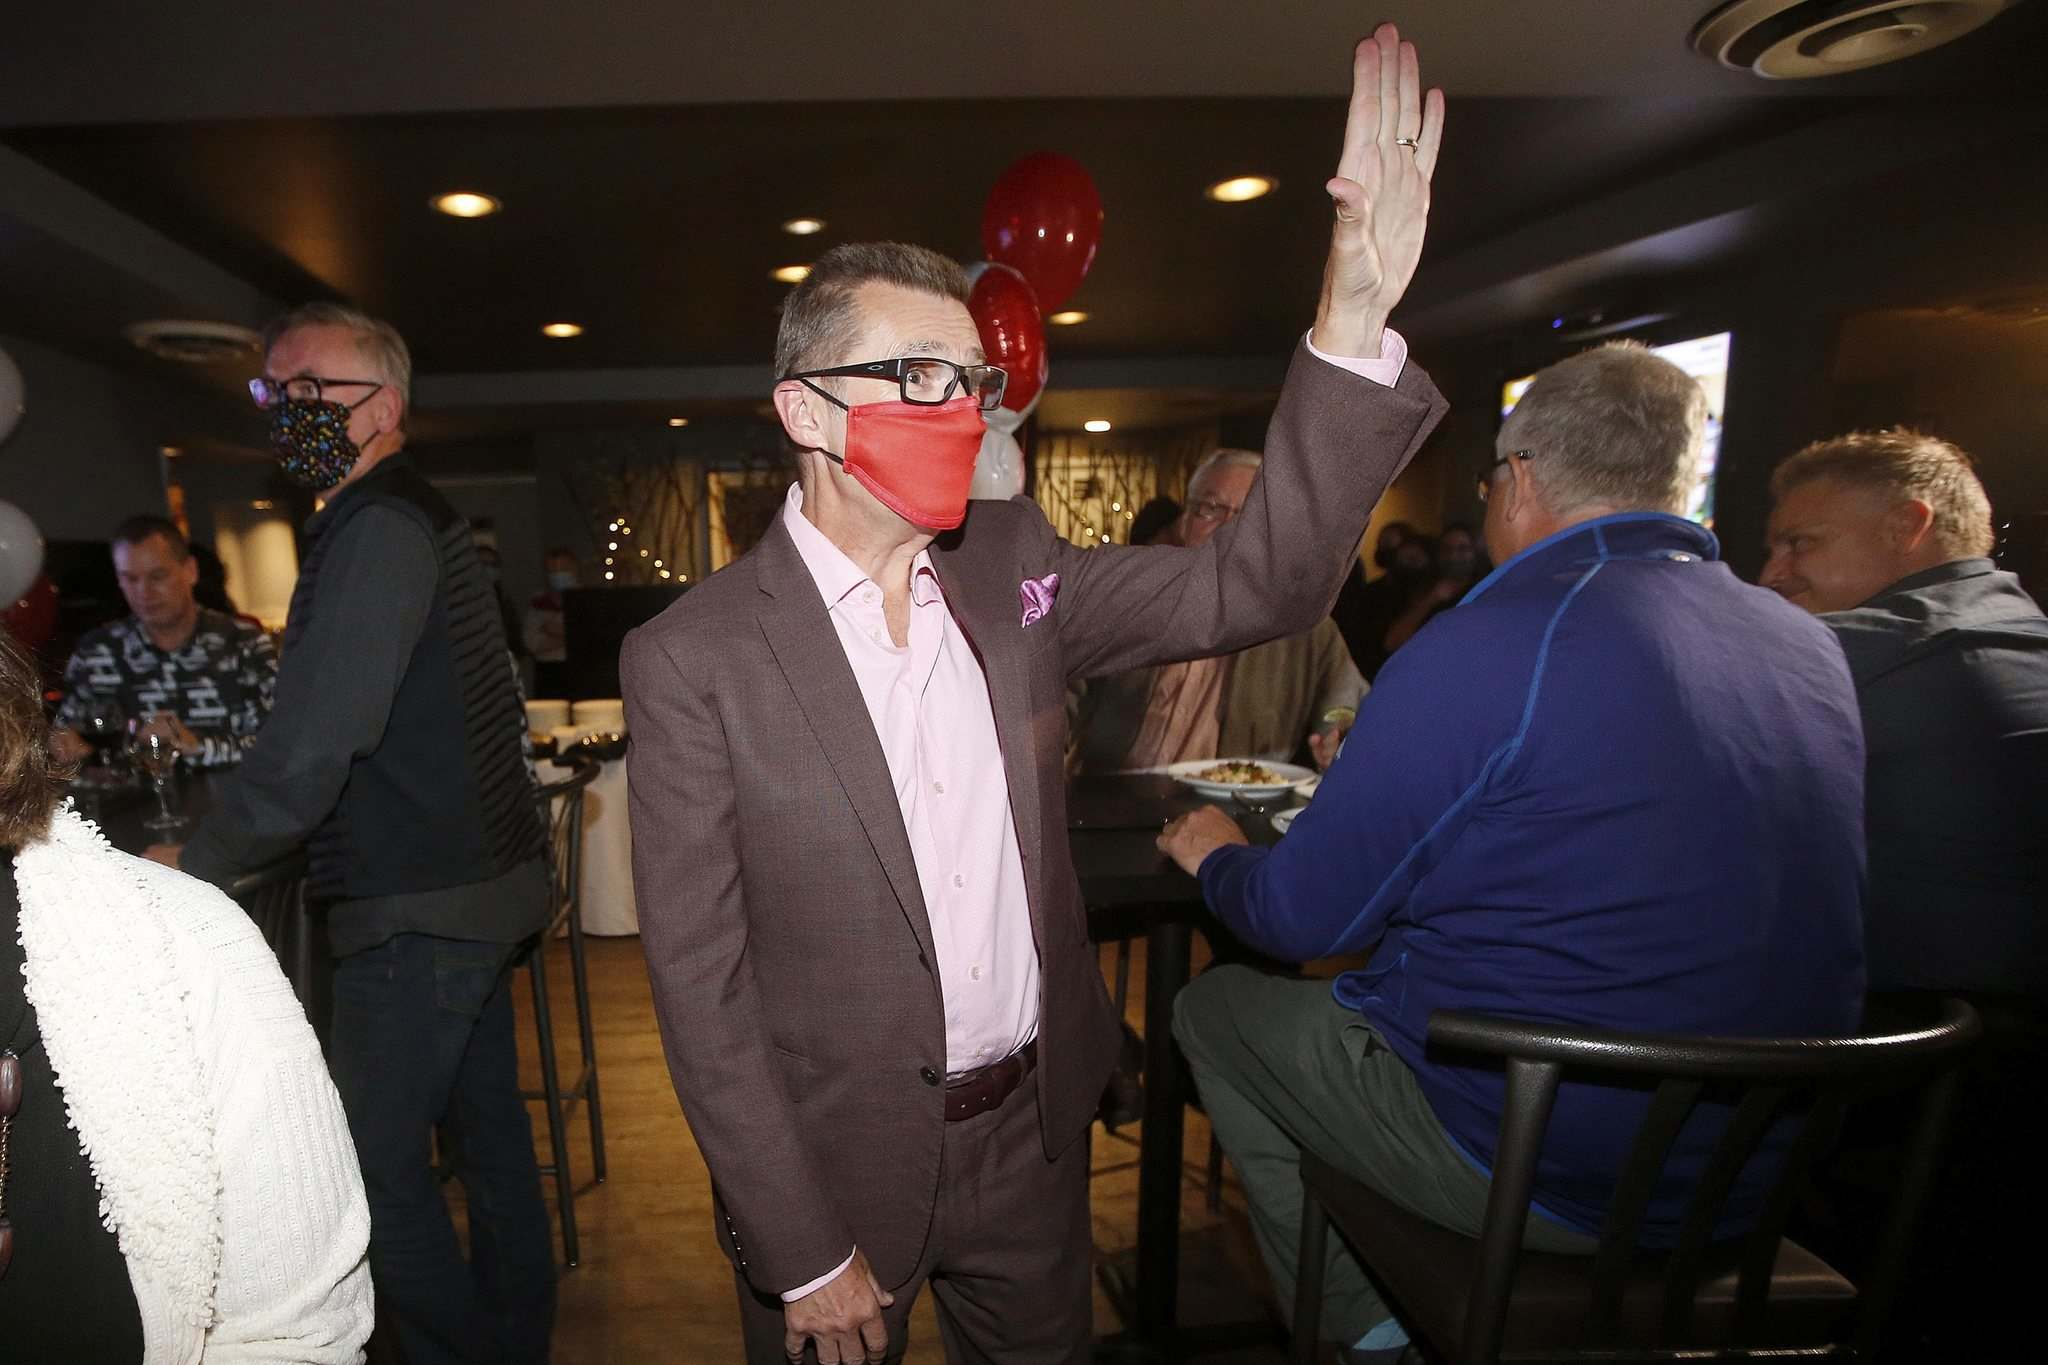 JOHN WOODS / WINNIPEG FREE PRESS</p><p>As the results rolled in Monday, Eyolfson dined with supporters at the Cork & Flame restaurant and bar.</p>